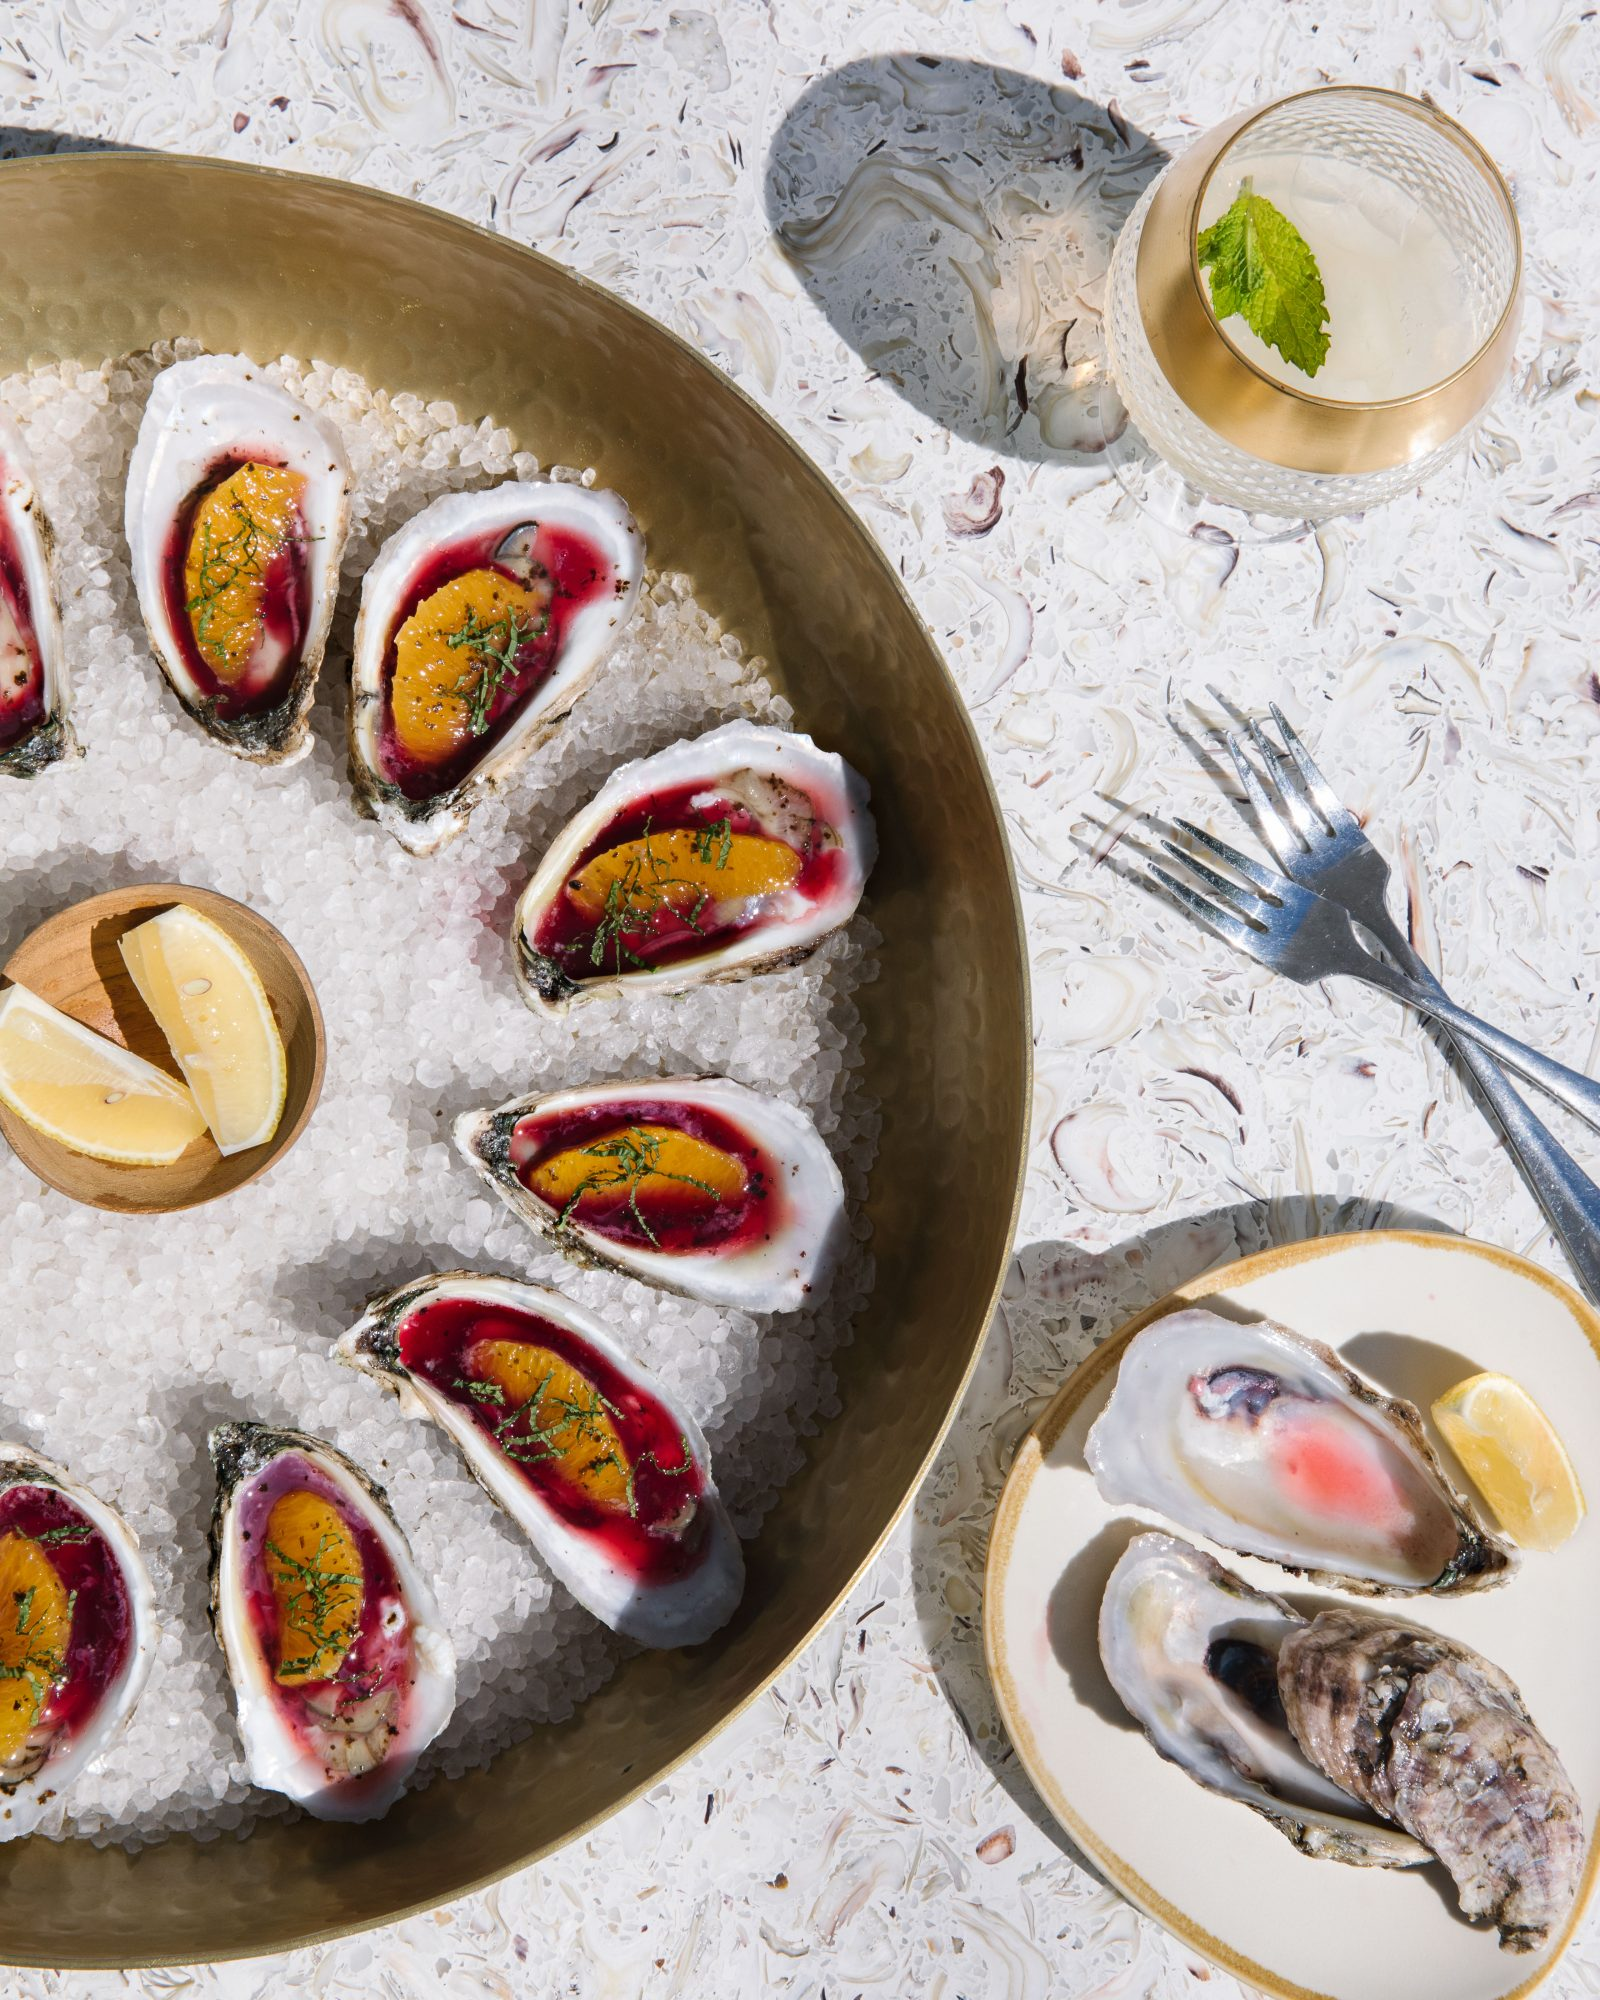 Bivalves Served at The Franklin in Apalachicola, FL